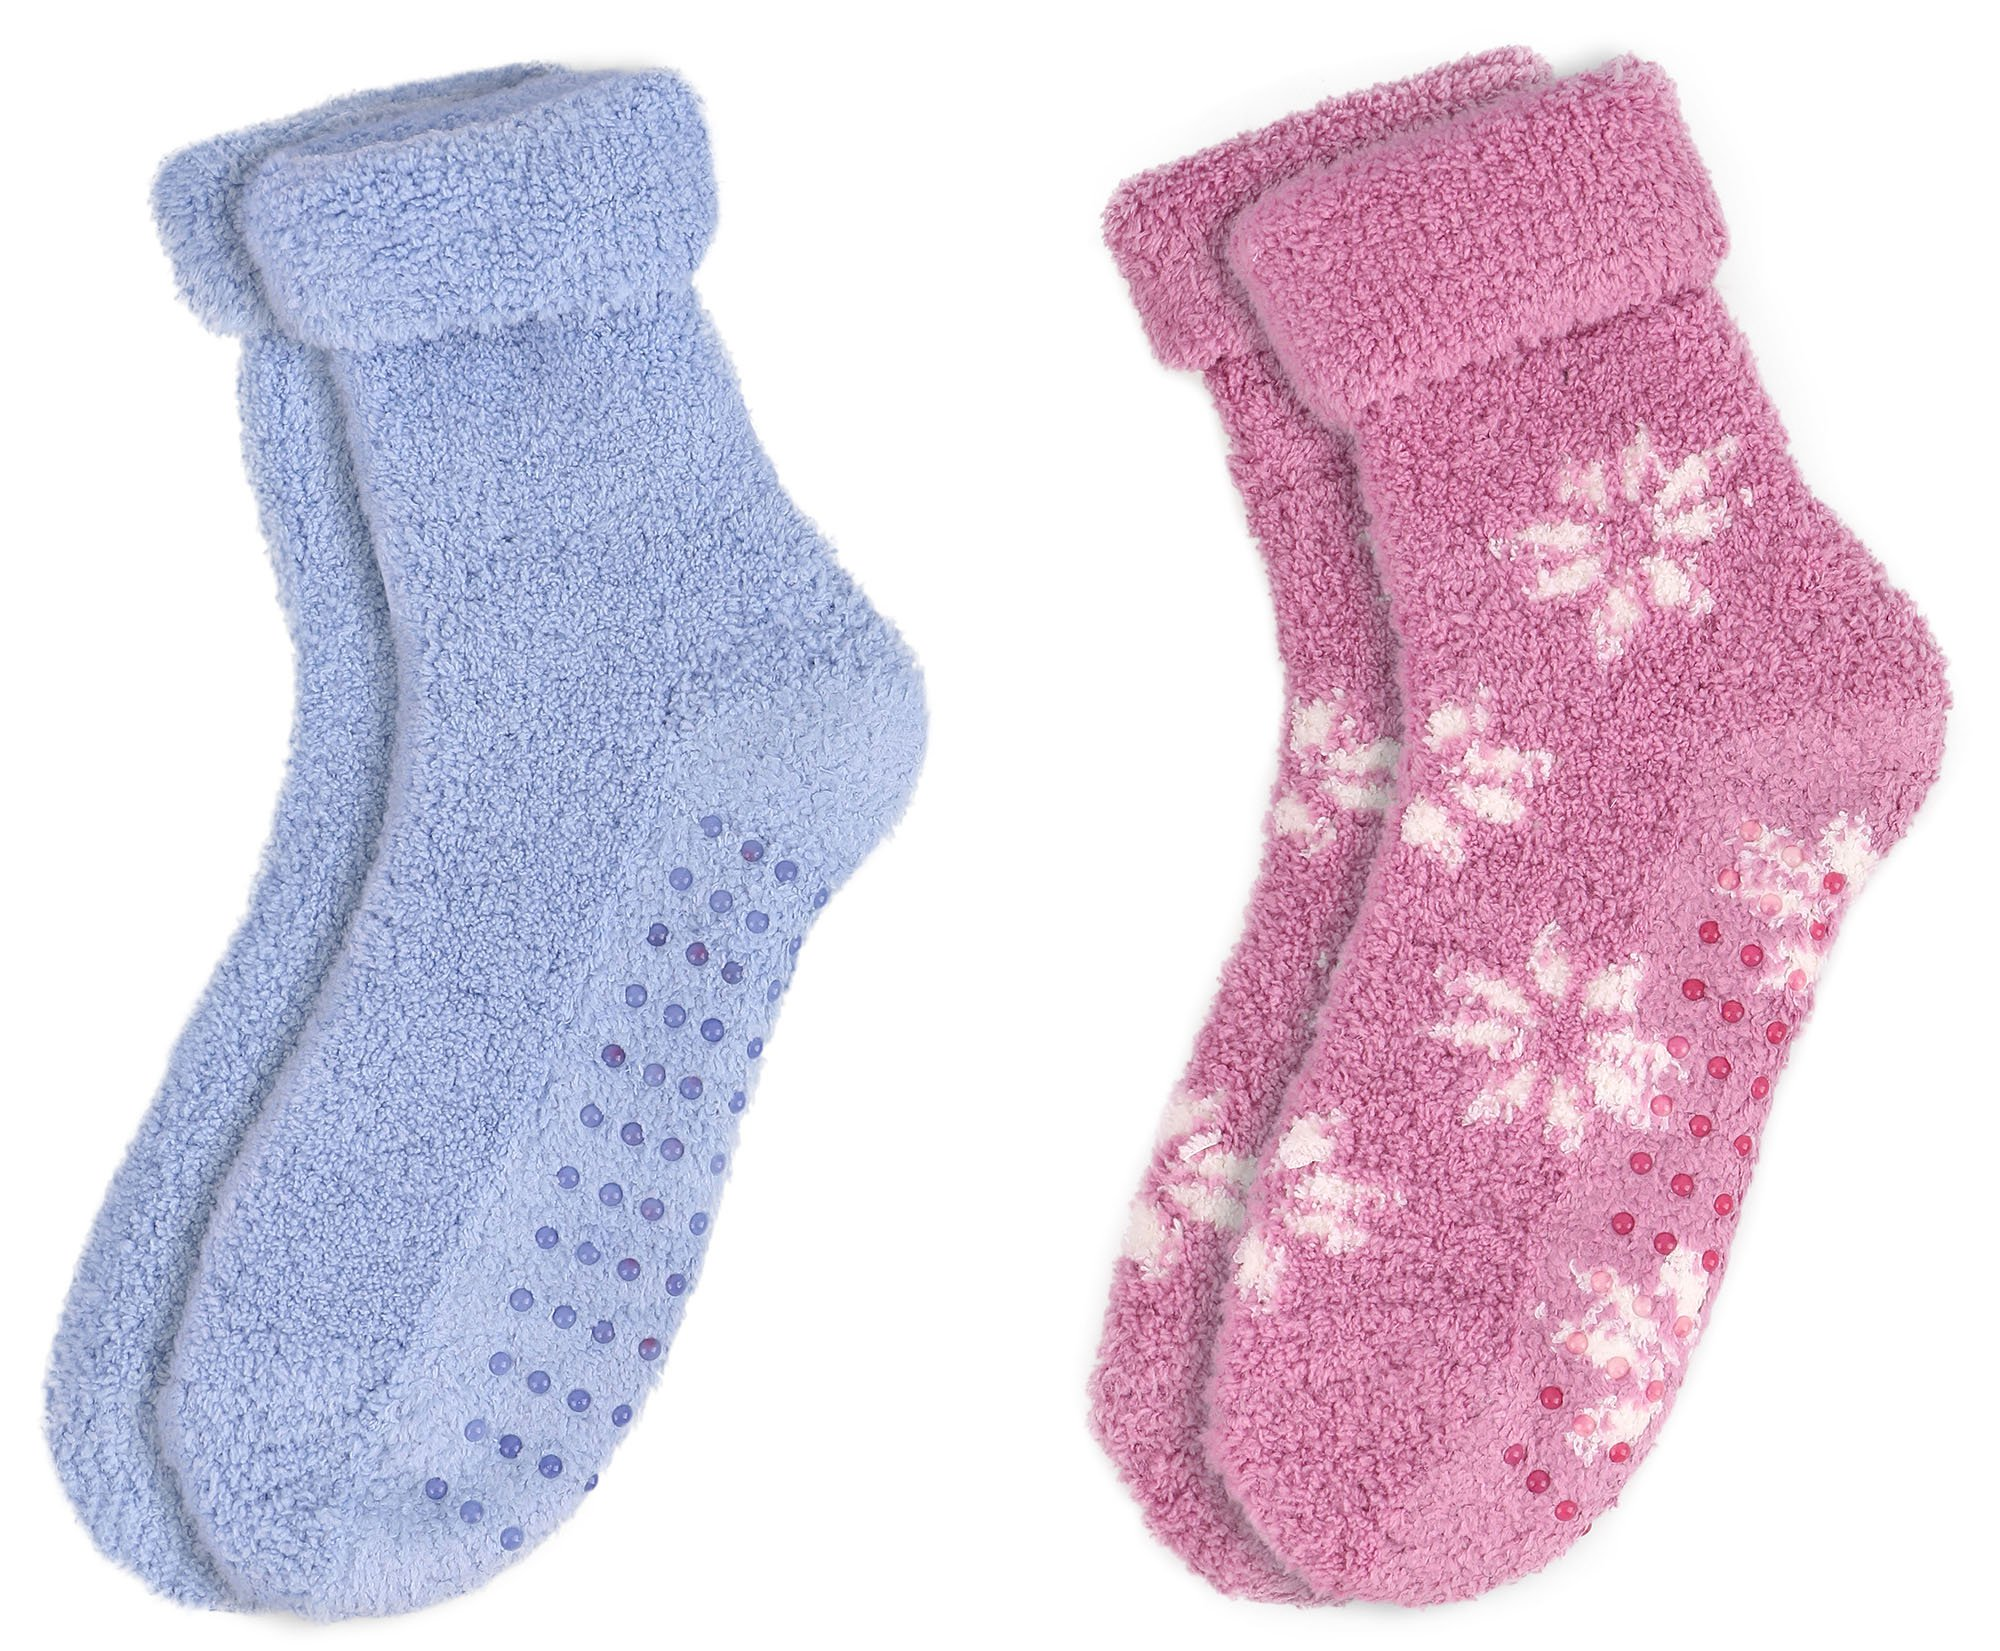 Women's Soft & Furry Thick Non-Slip Winter Ankle Socks,2Pairs_Style 3